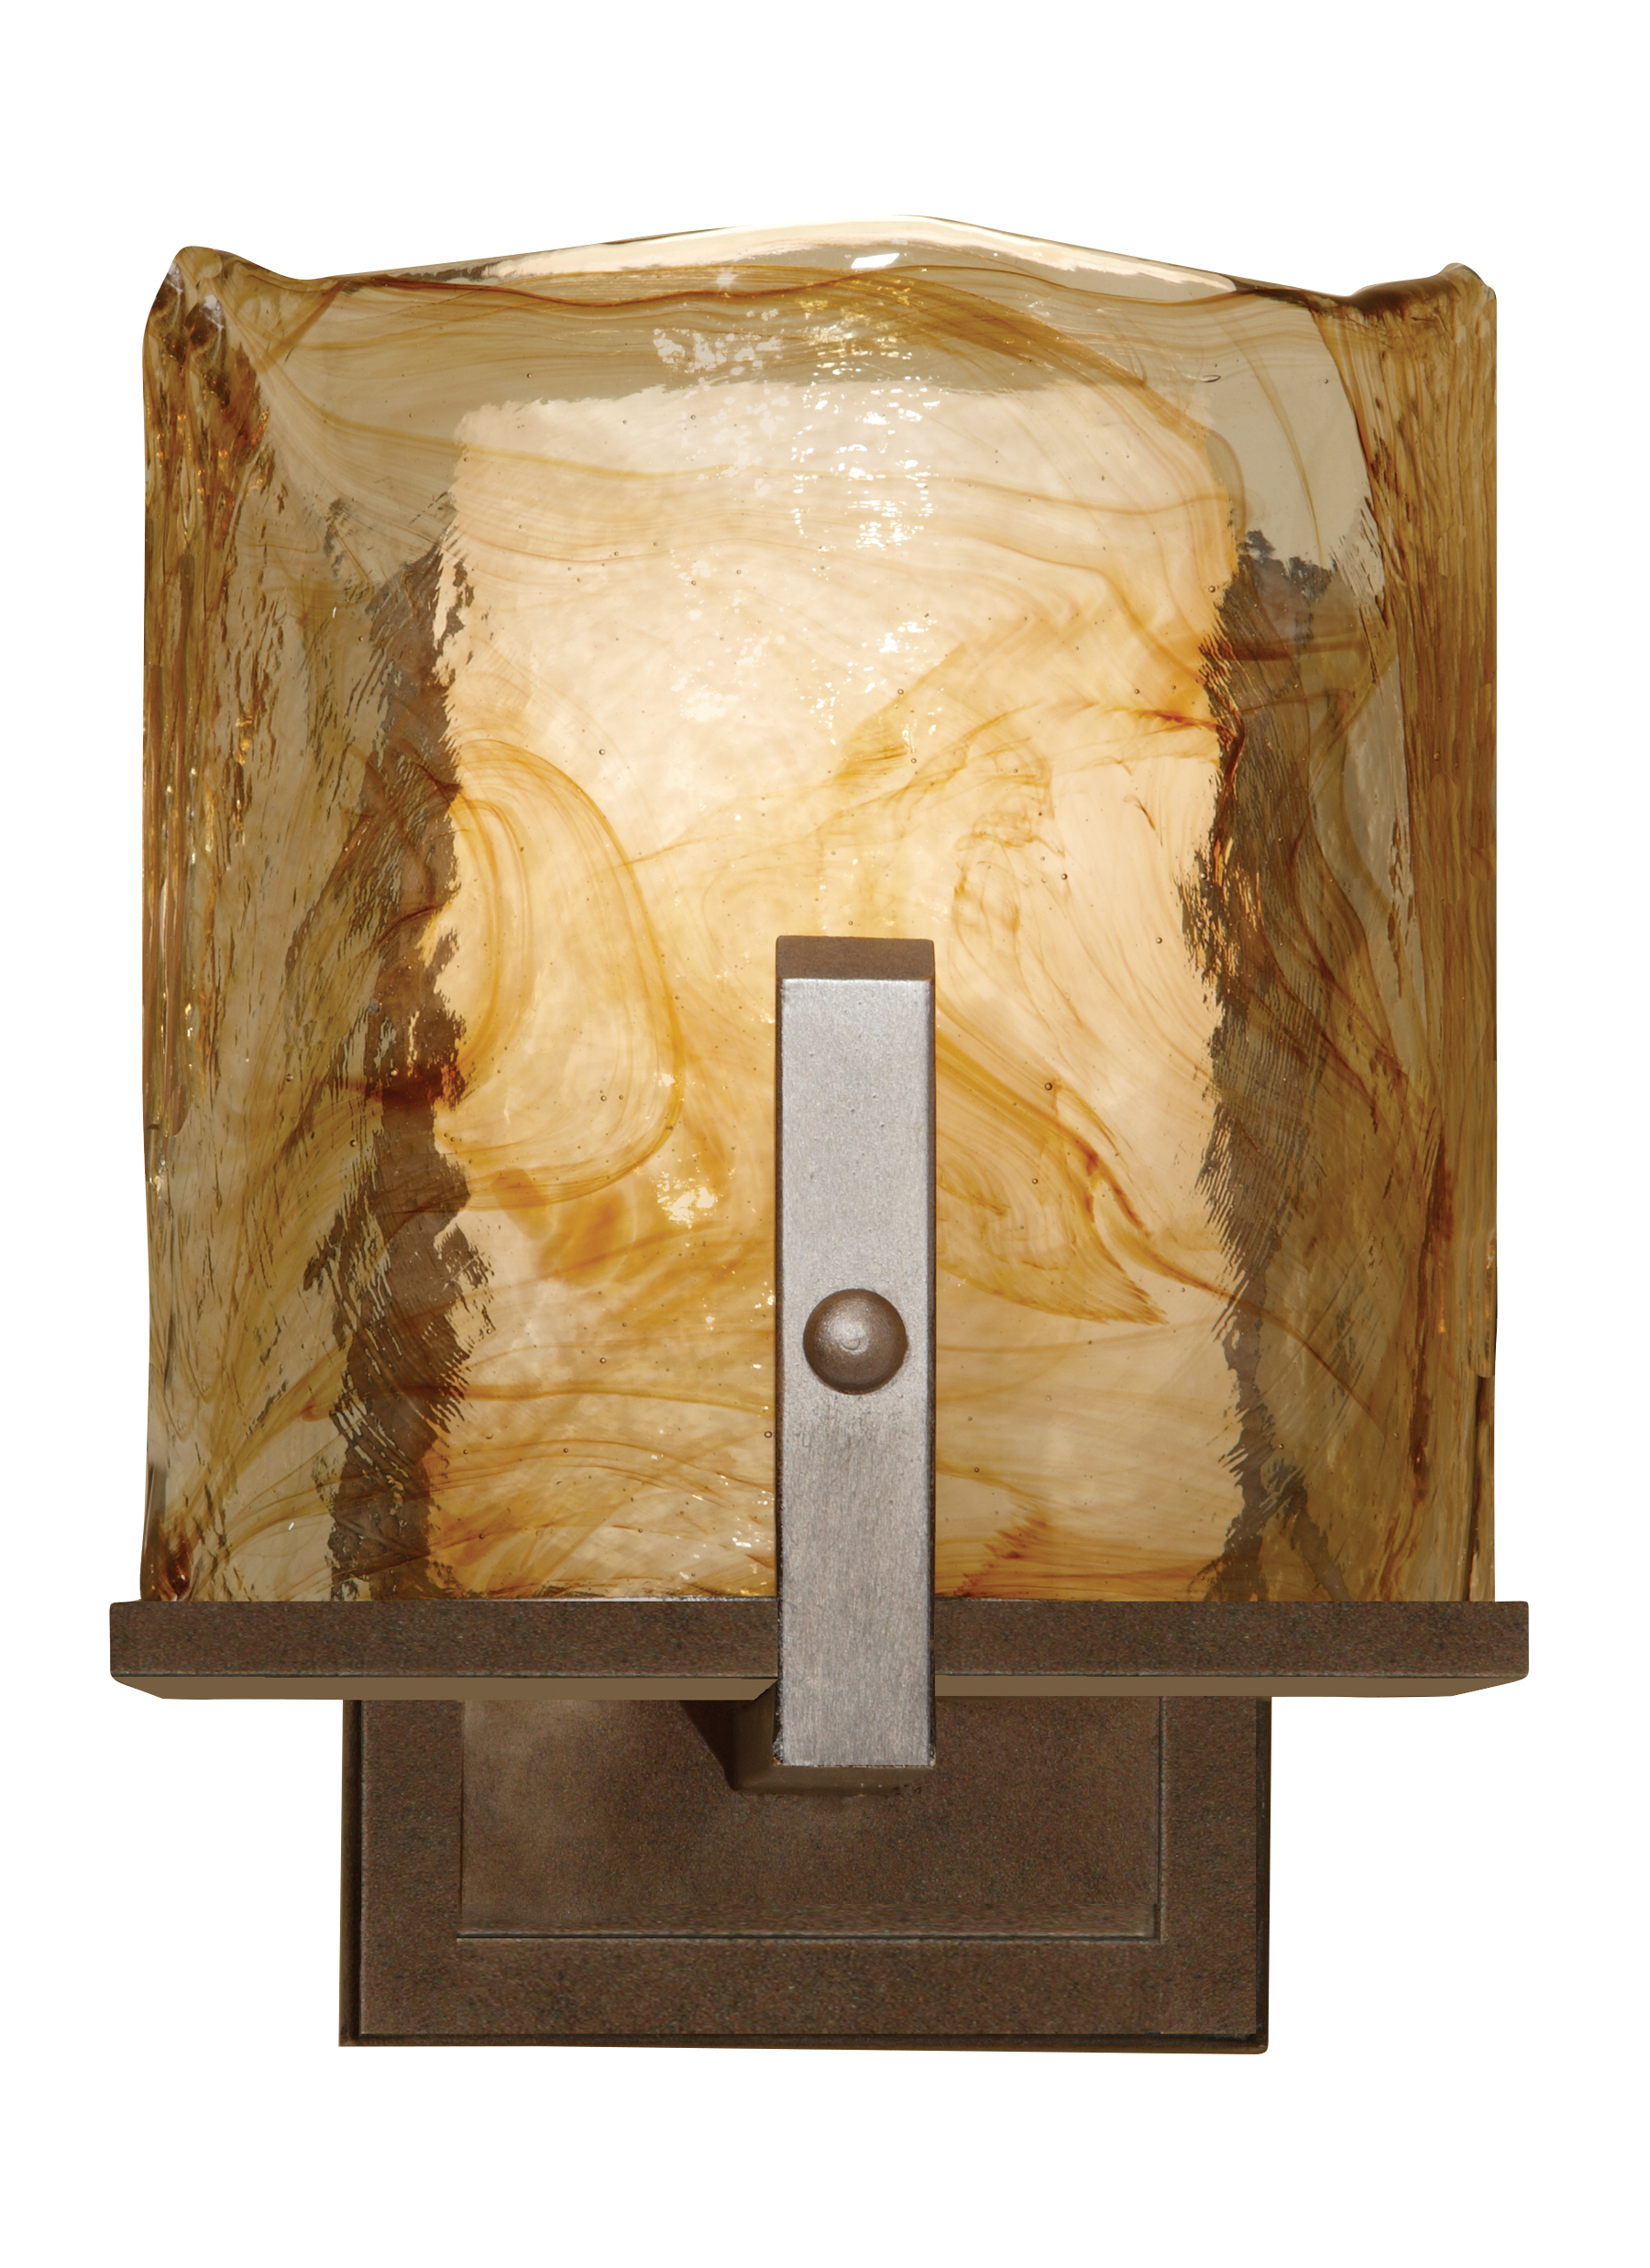 WB1575RBZ,1 - Light Sconce,Roman Bronze